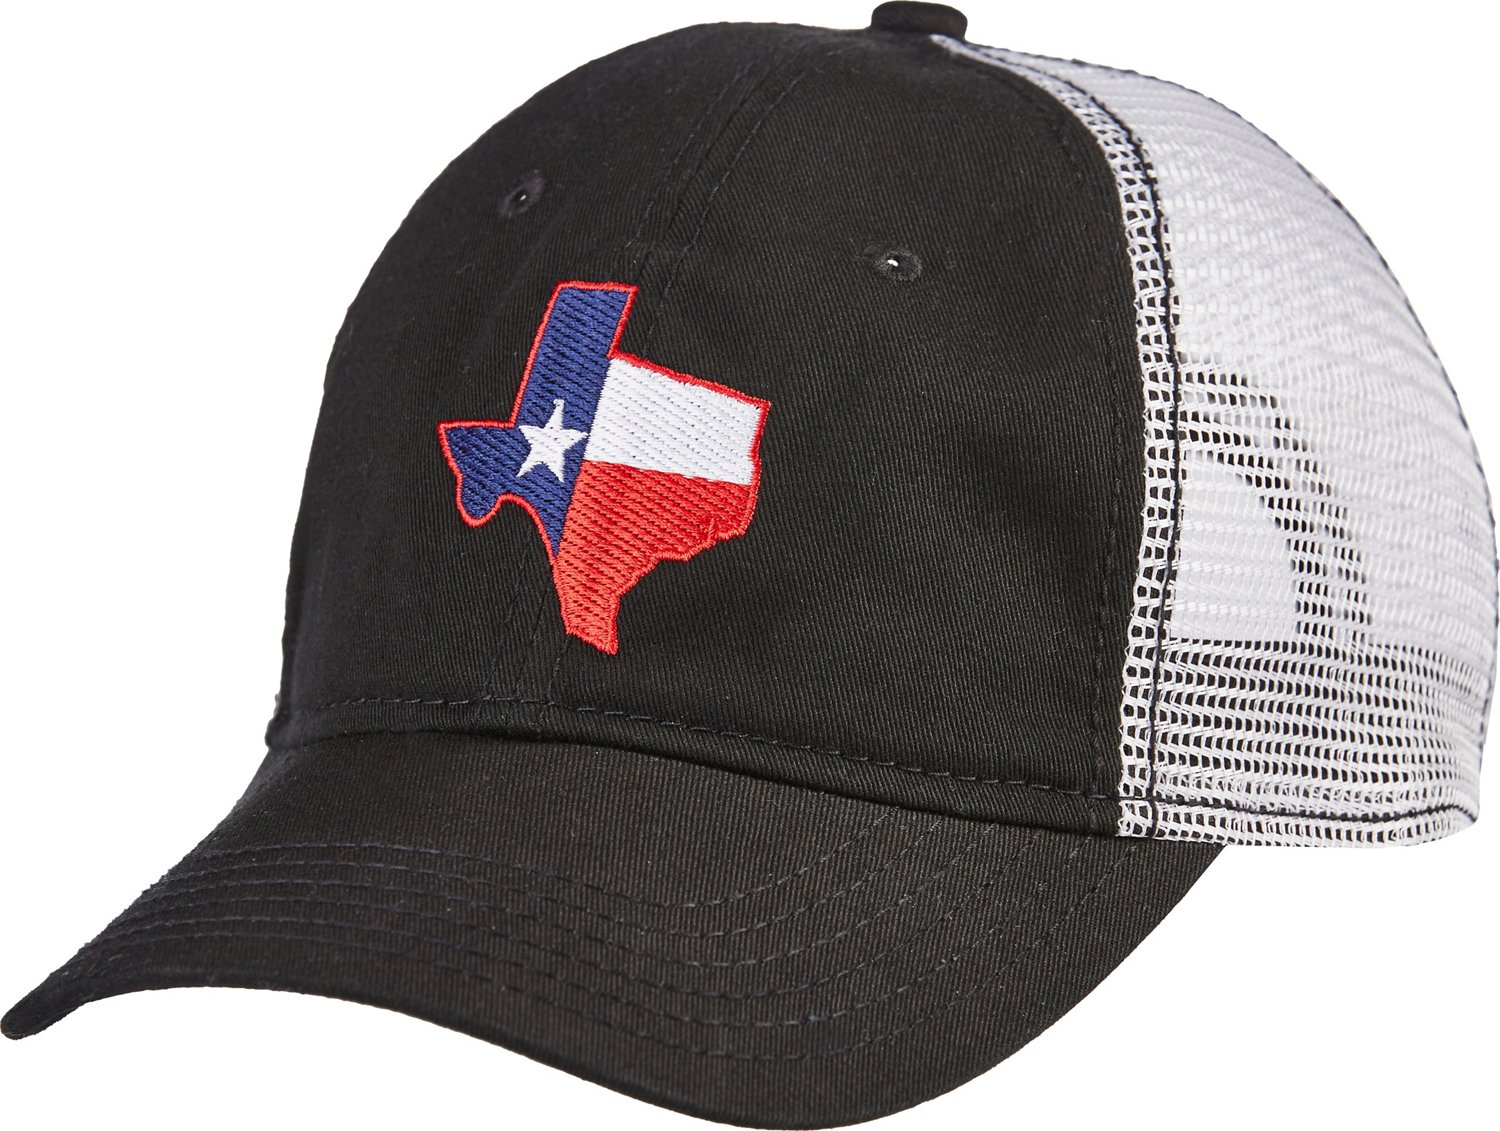 0cf5cf16abd438 Display product reviews for Academy Sports + Outdoors Men's Big Texas  Trucker Hat